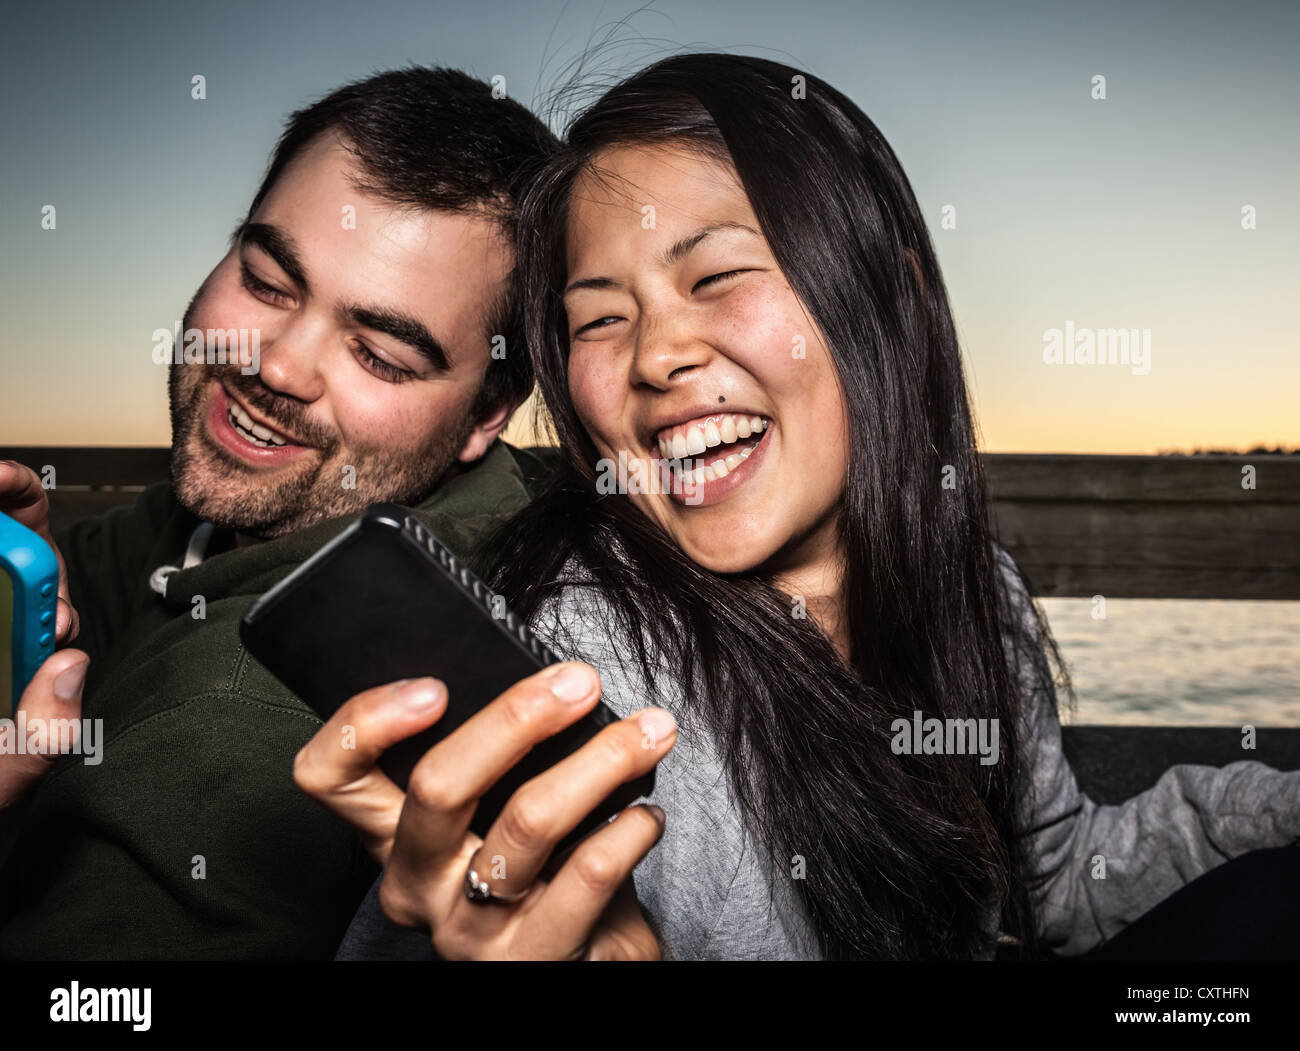 Couple using cell phones outdoors - Stock Image